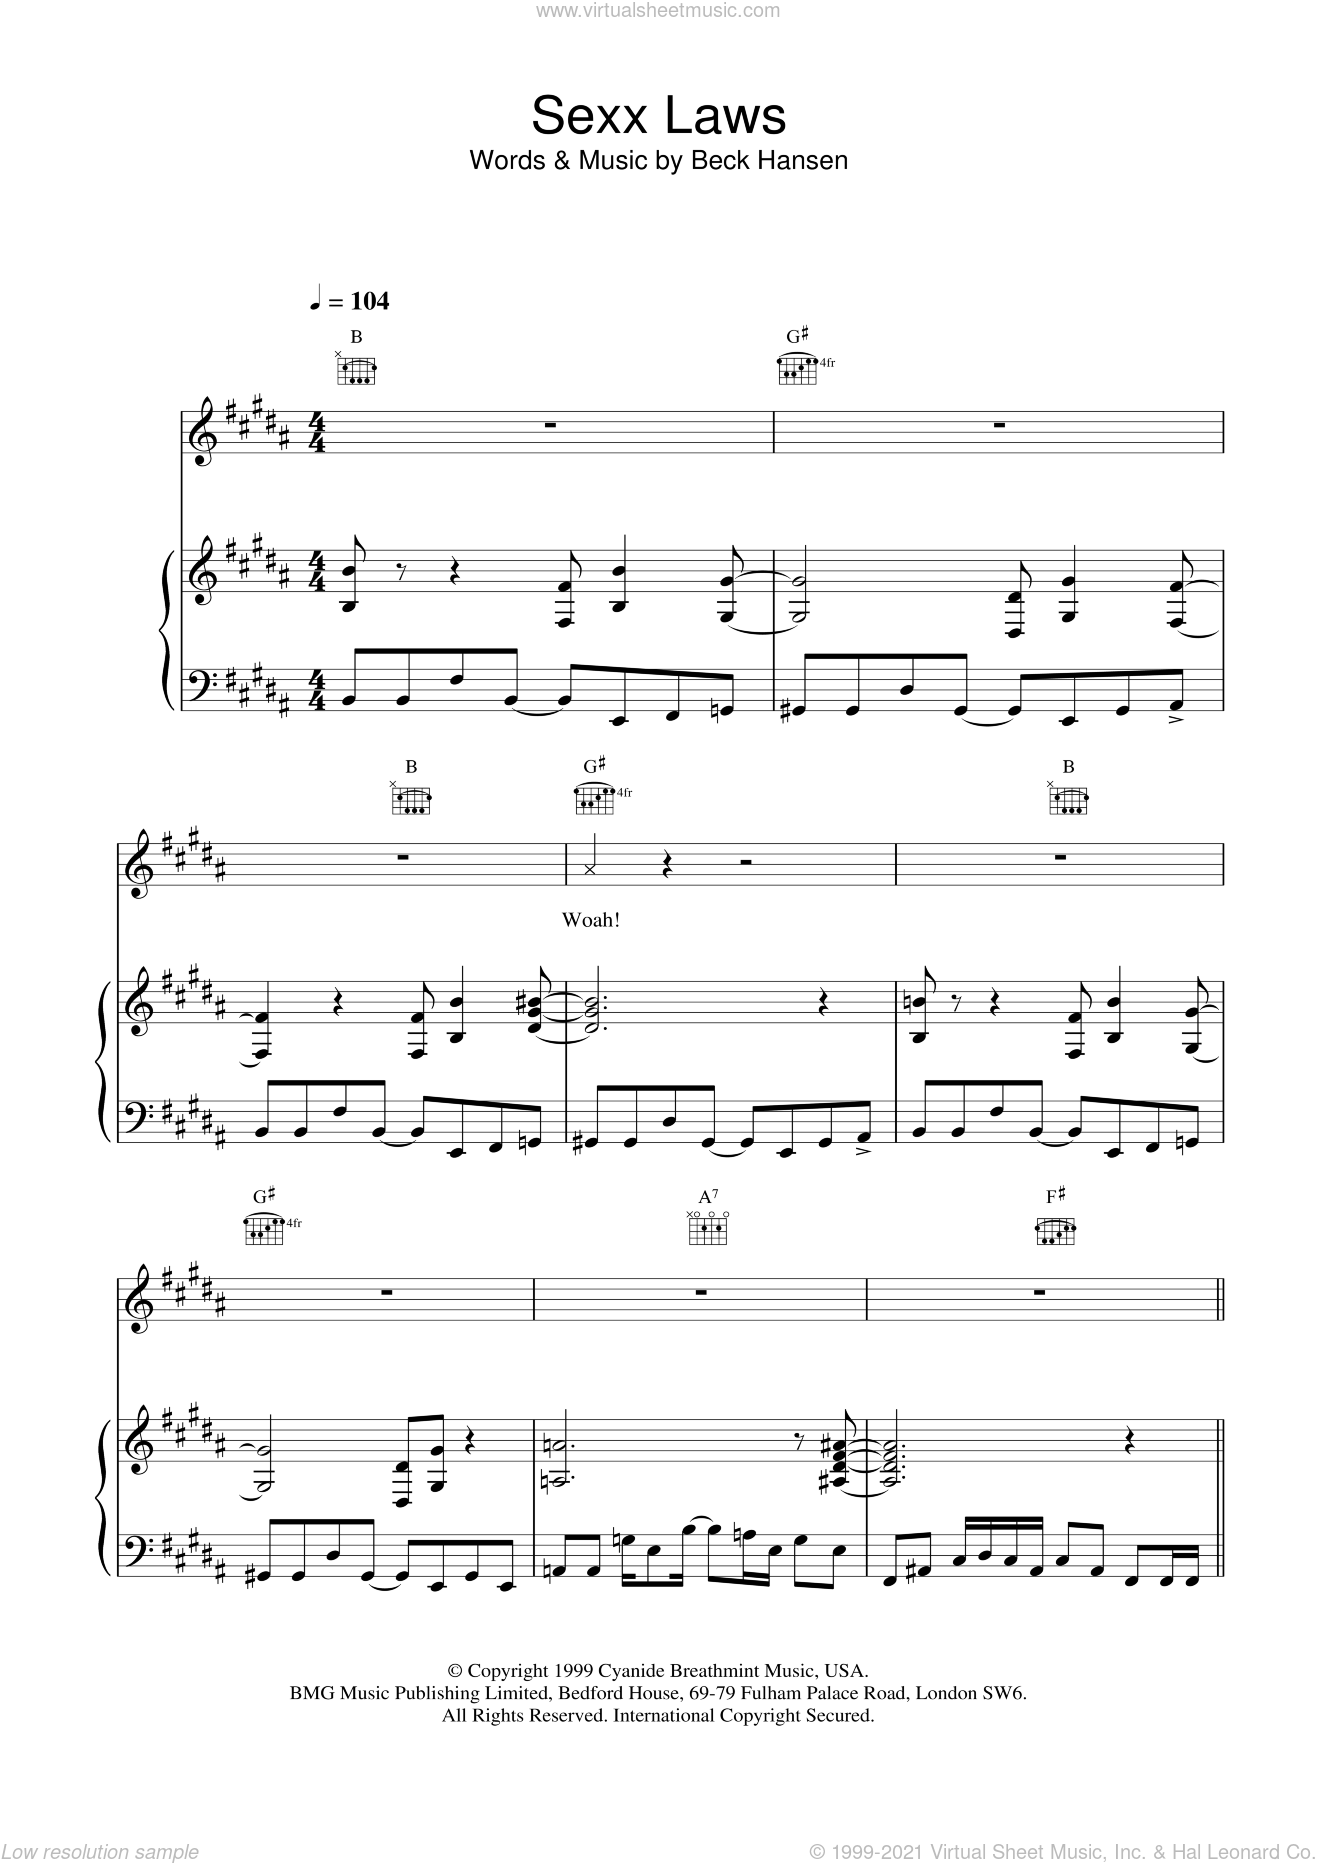 Sexx laws sheet music for voice, piano or guitar by Beck Hansen, intermediate skill level